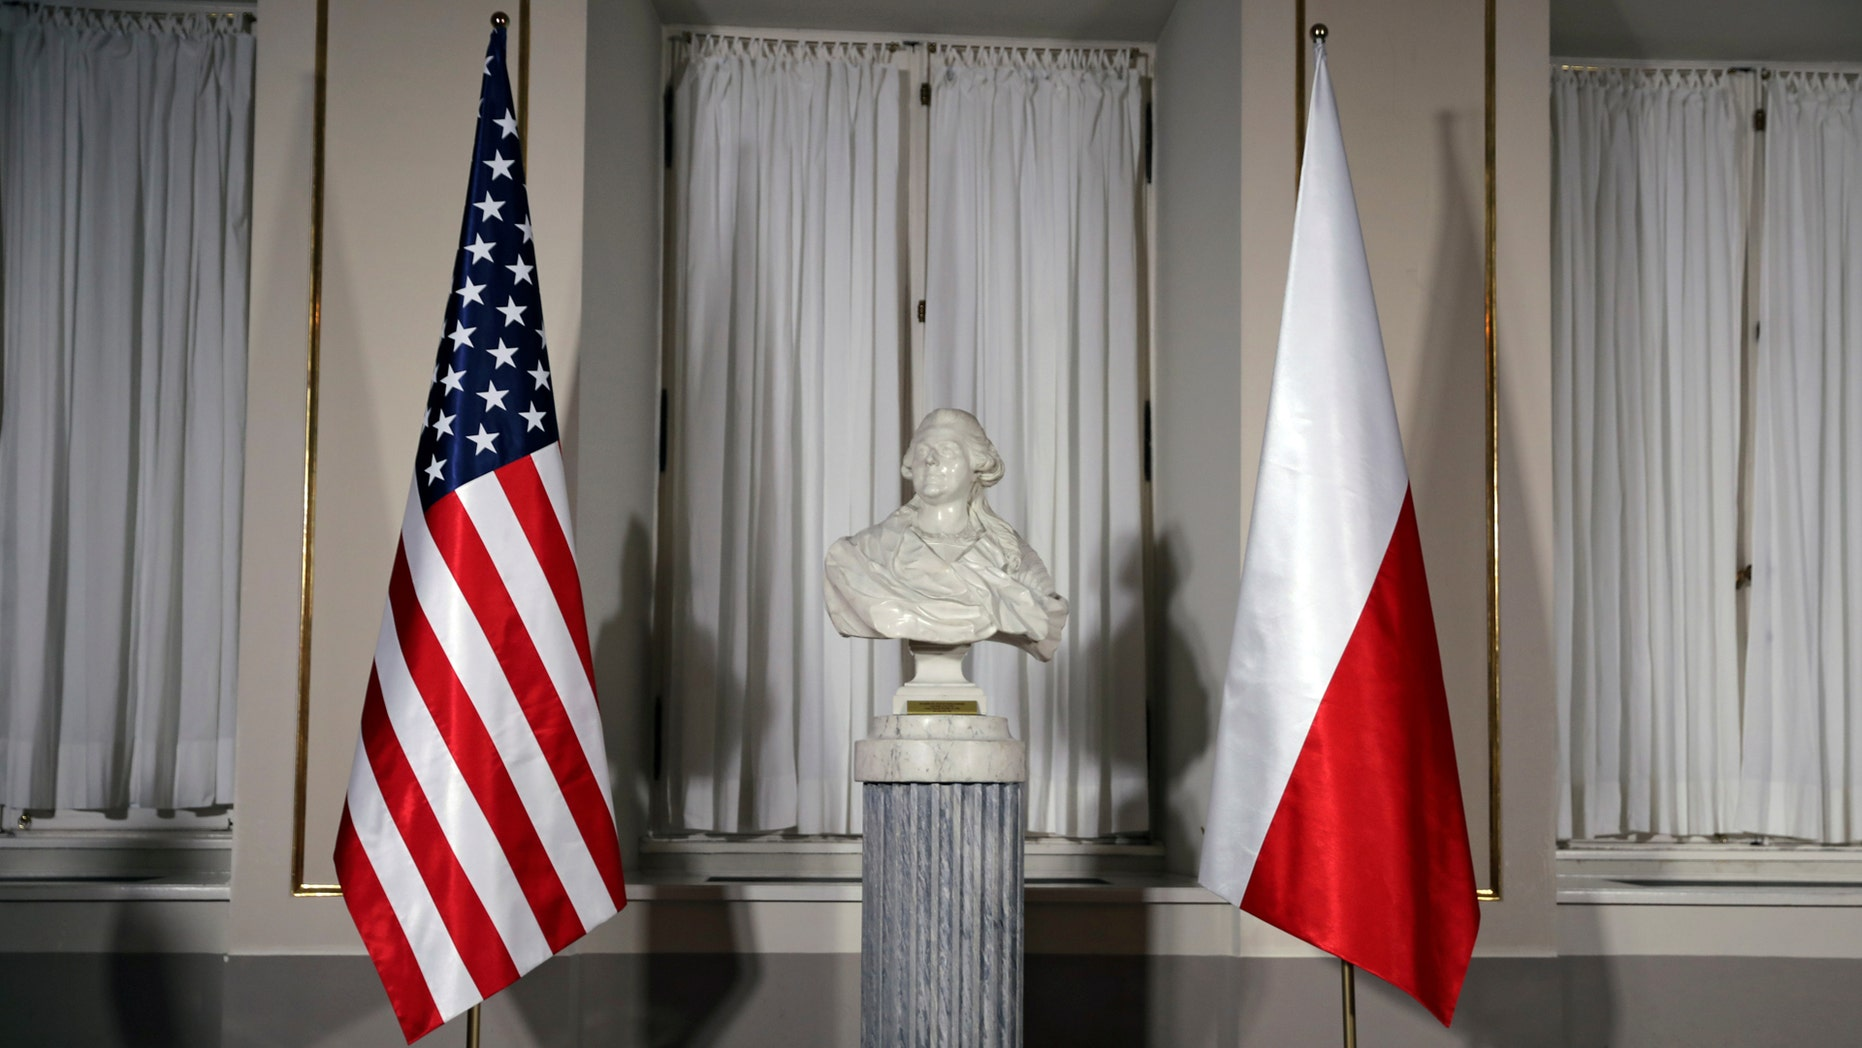 File photo: A bust of Polish composer Frederic Chopin is flanked by U.S. and Polish flags ahead of the meeting between U.S. President Donald Trump and Polish President Andrzej Duda in Warsaw, Poland July 6, 2017. (REUTERS/Carlos Barria)